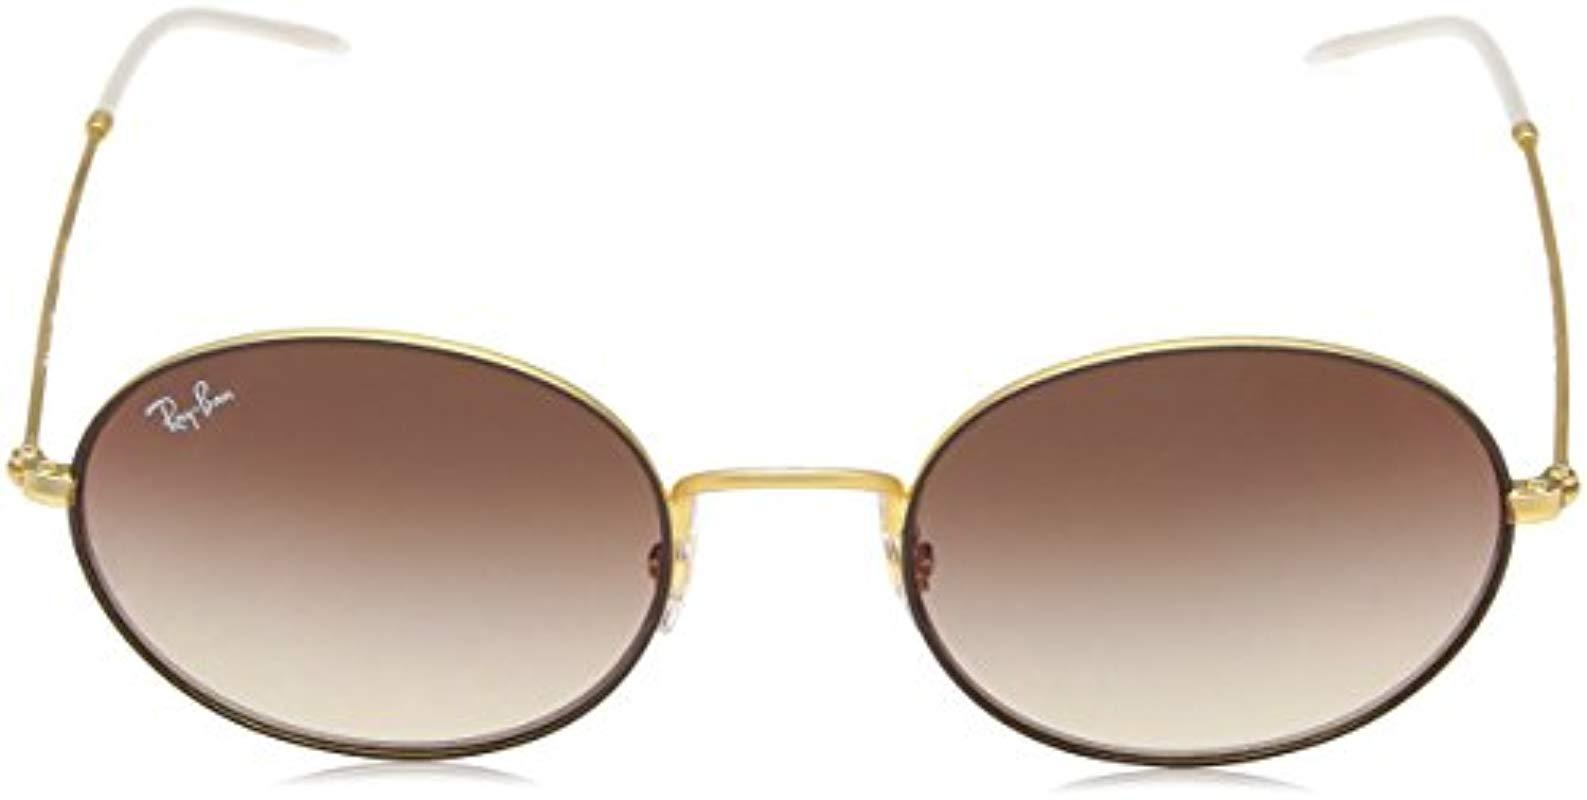 6bf097618 Ray-Ban. Women's 0rb3594 Non-polarized Iridium Oval Sunglasses, Rubber Gold  On Brown, 53 Mm